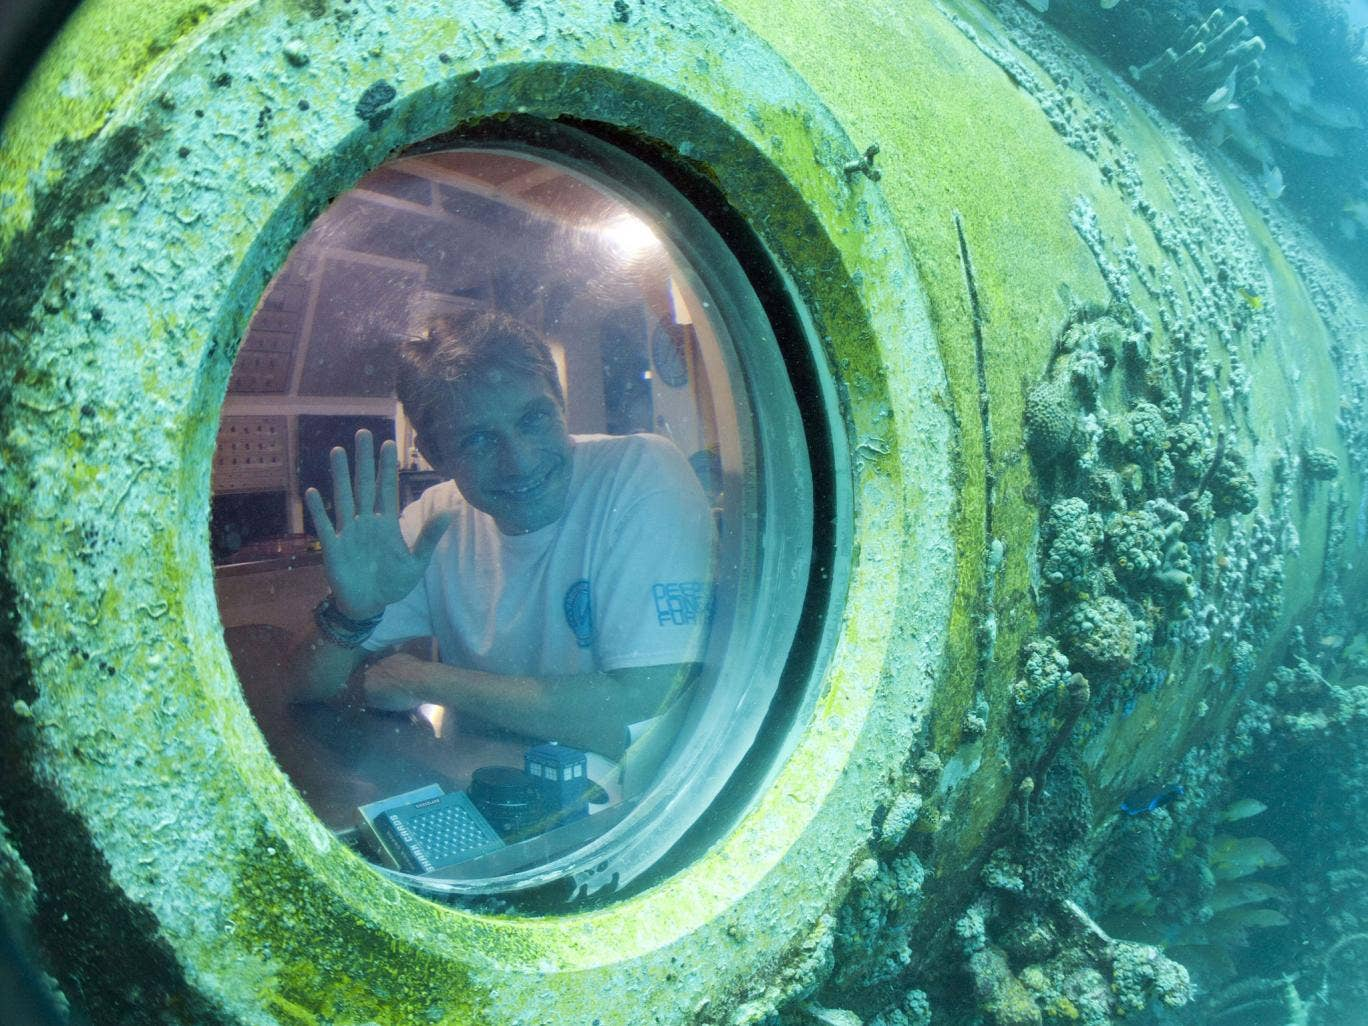 Fabien Cousteau waves from inside Aquarius Reef Base, a laboratory 63 feet below the surface in the waters off Key Largo, in the Florida Keys